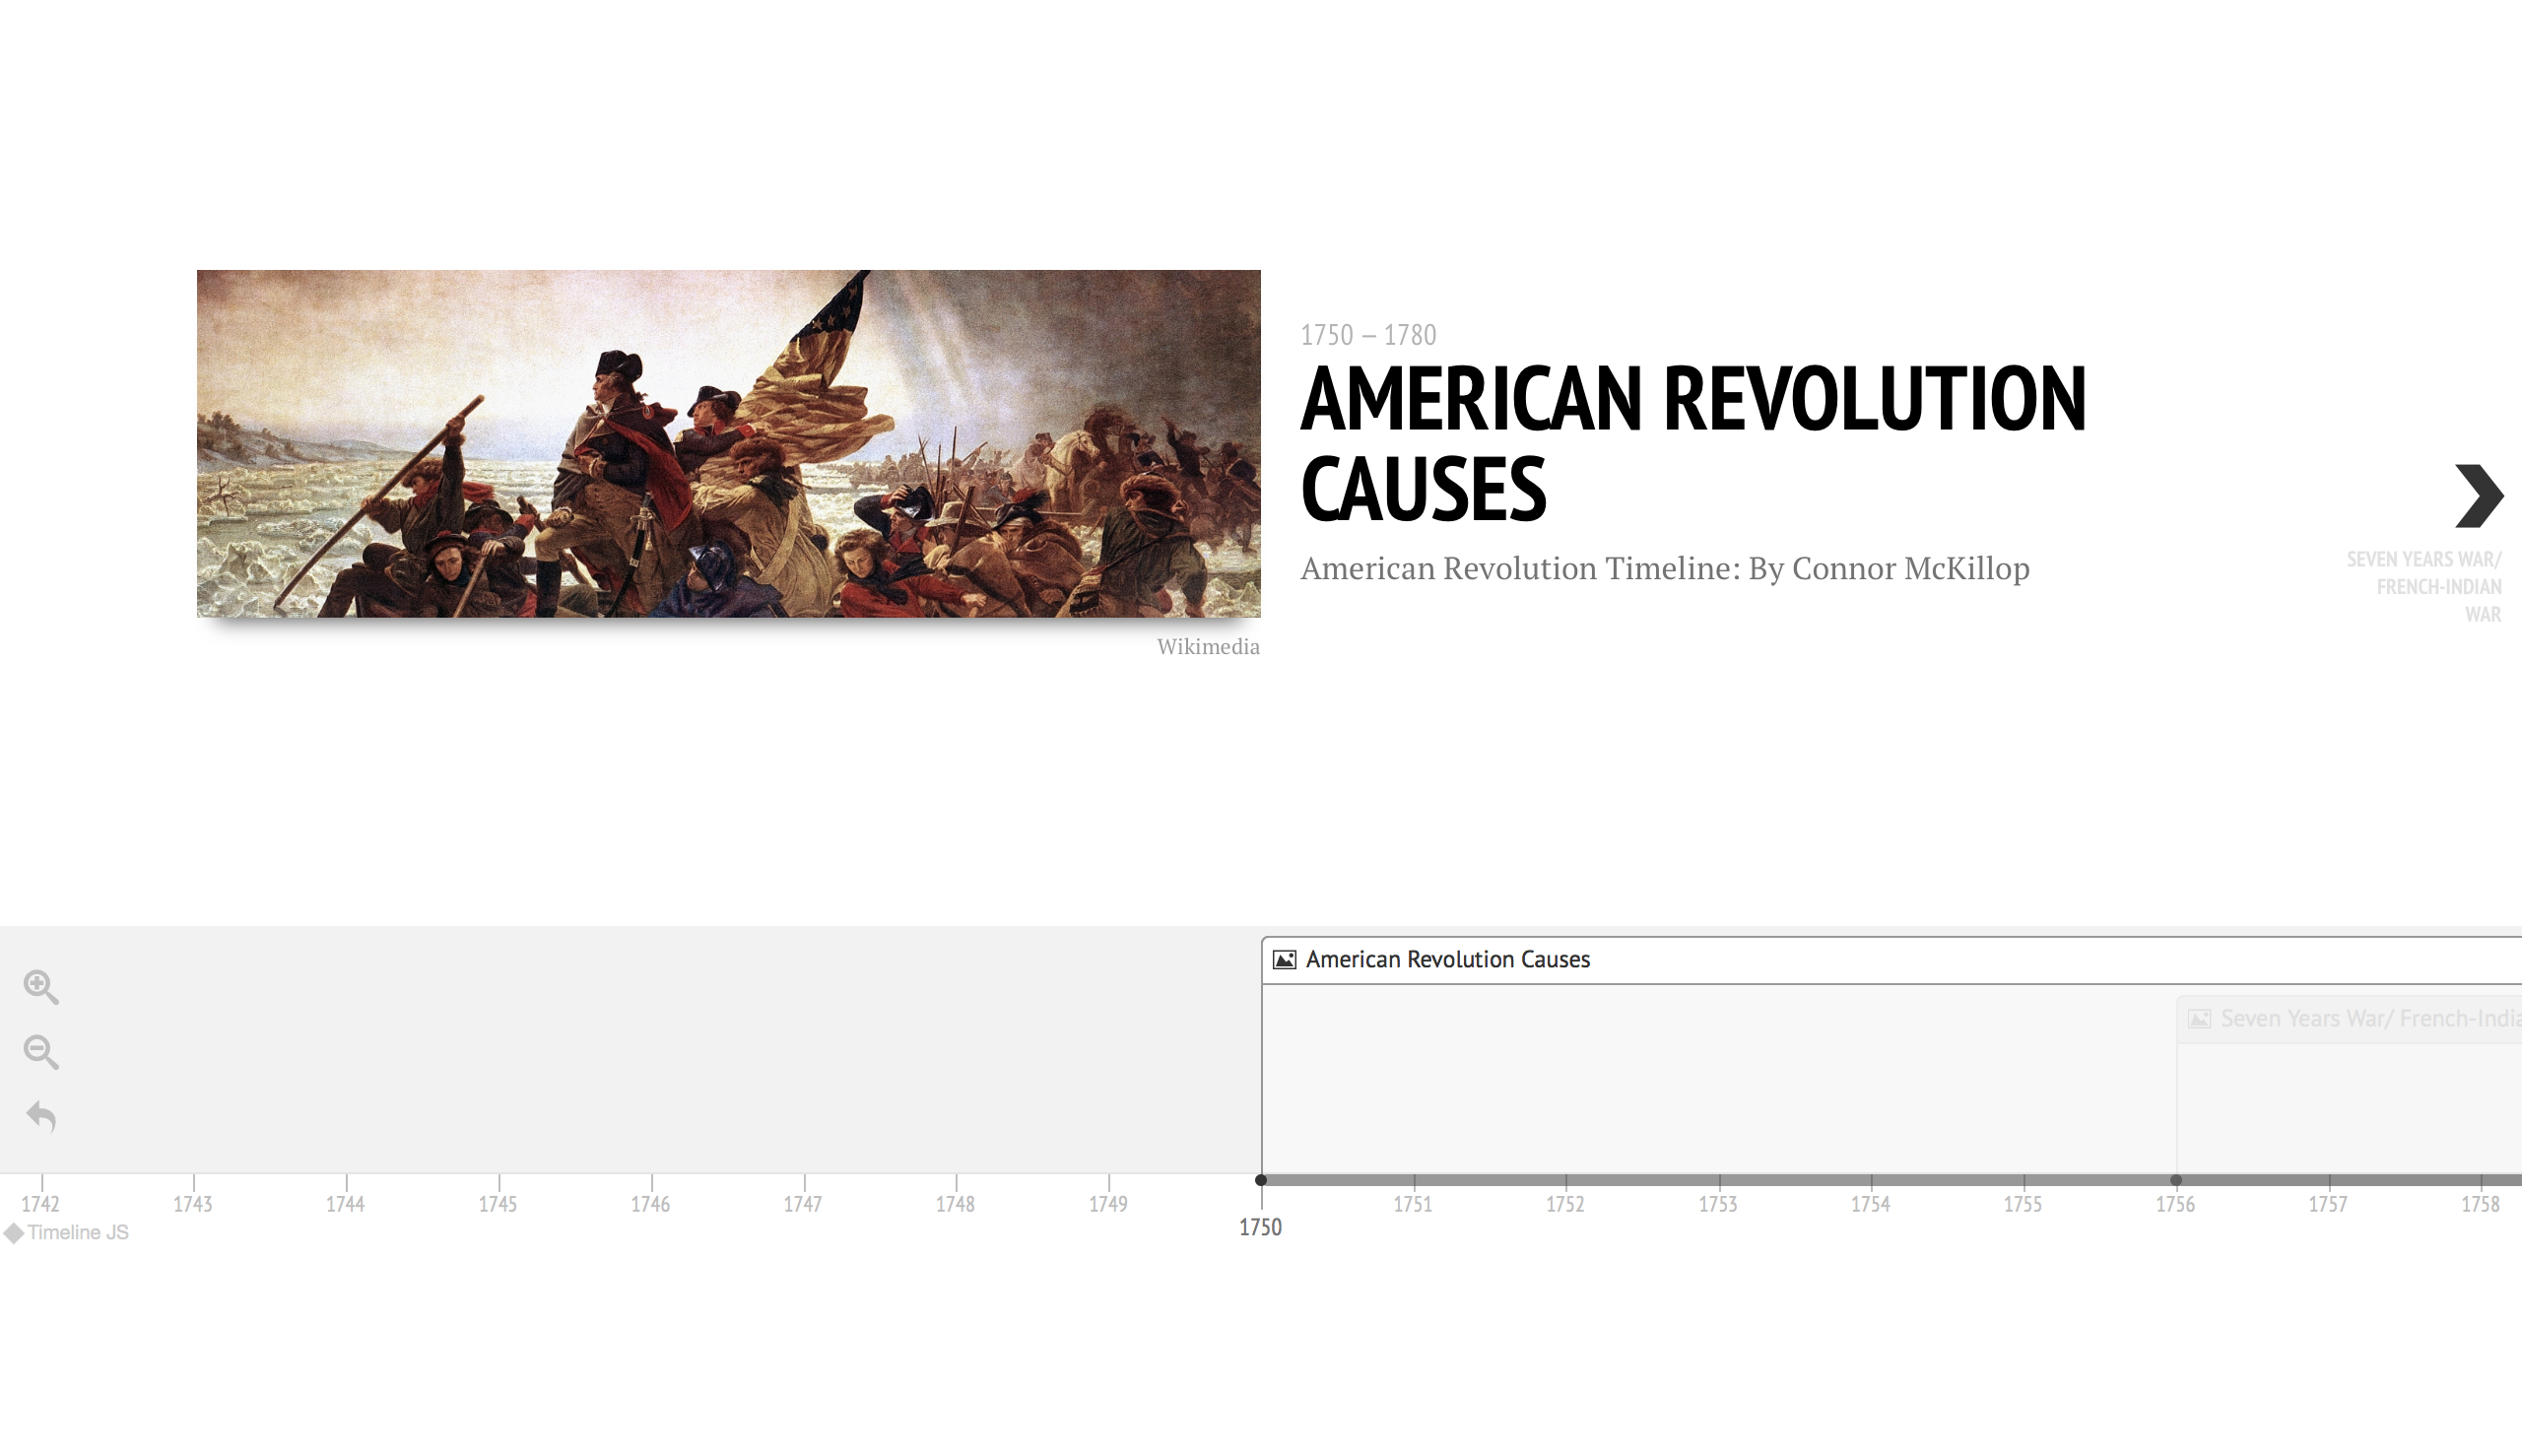 Timeline of the causes of the American Revolution.